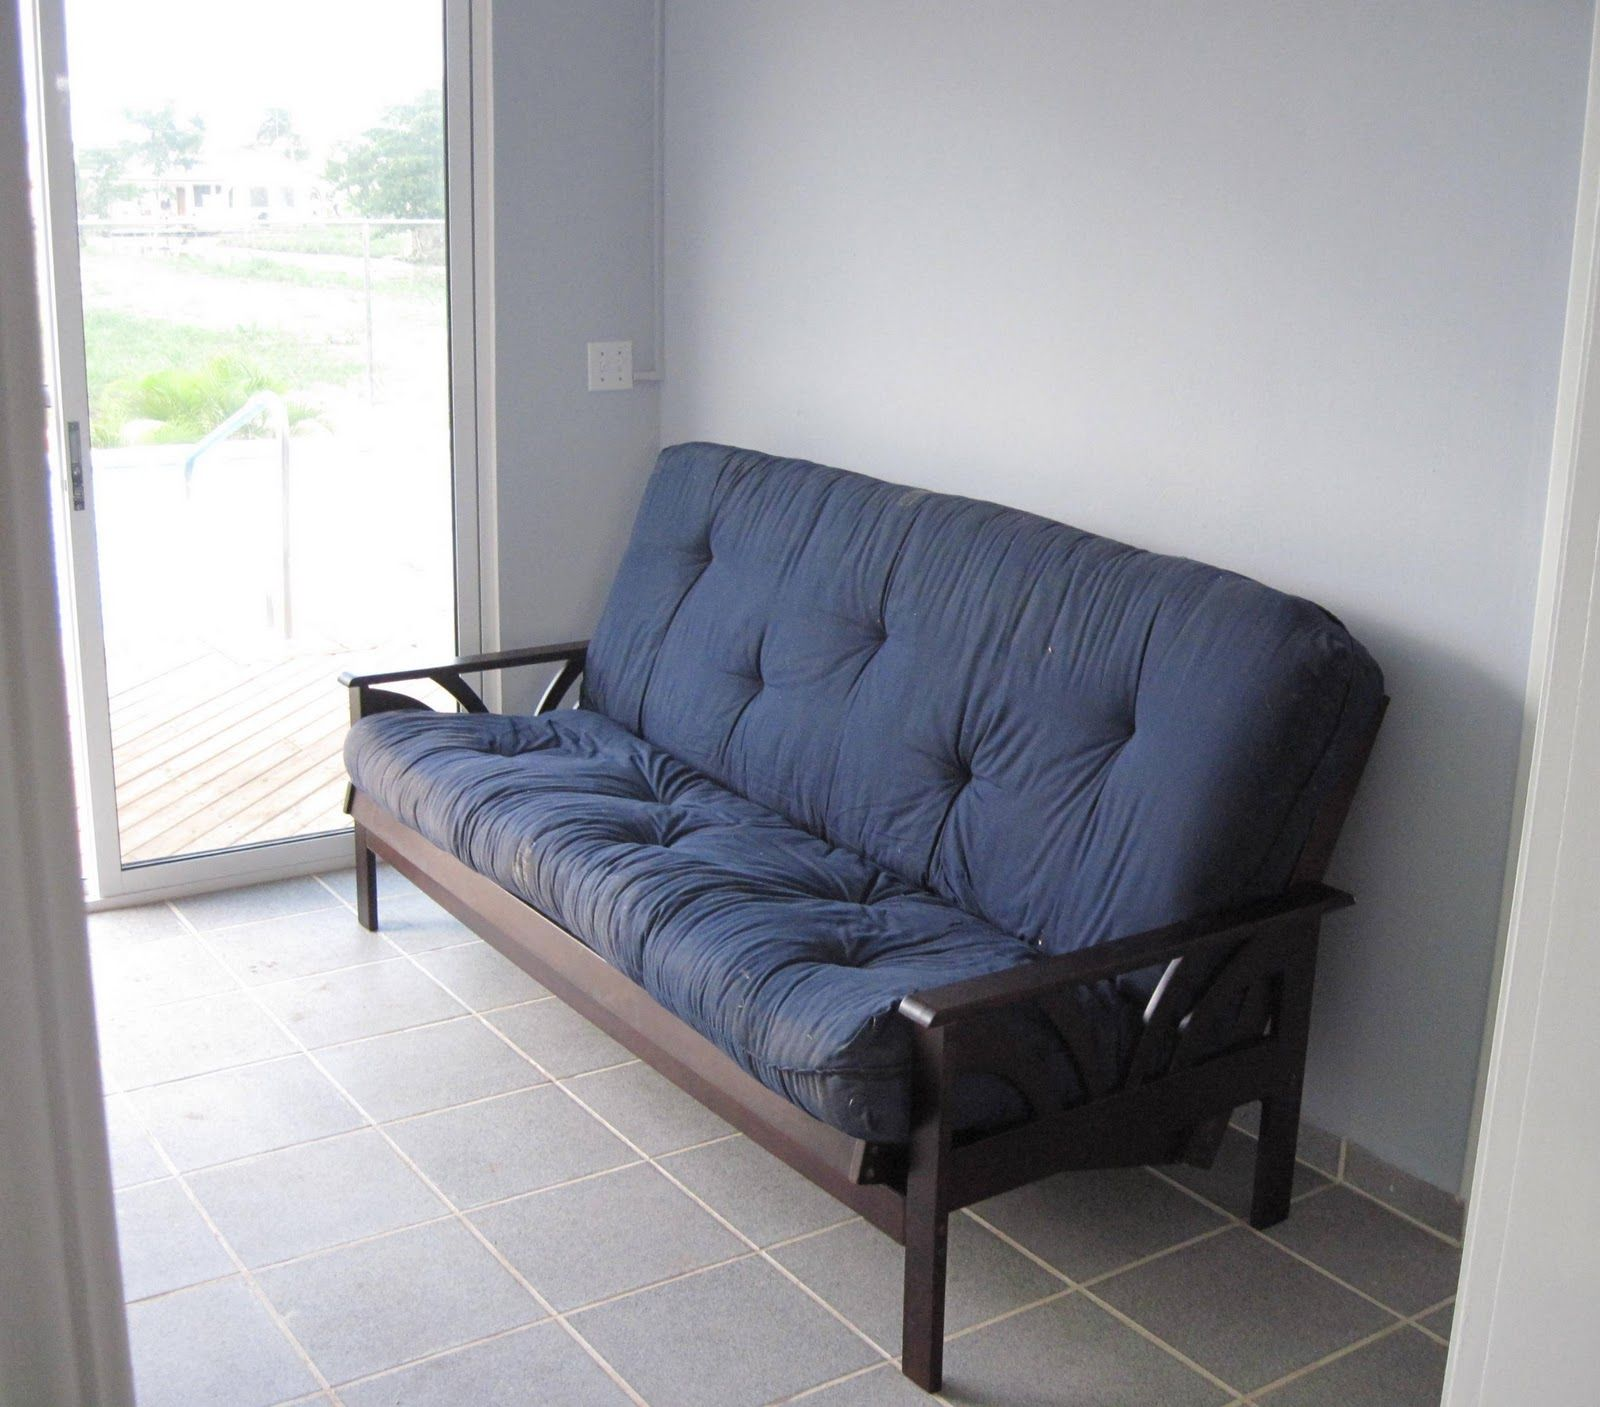 Futon For Cory S Apt Instead Of Couch